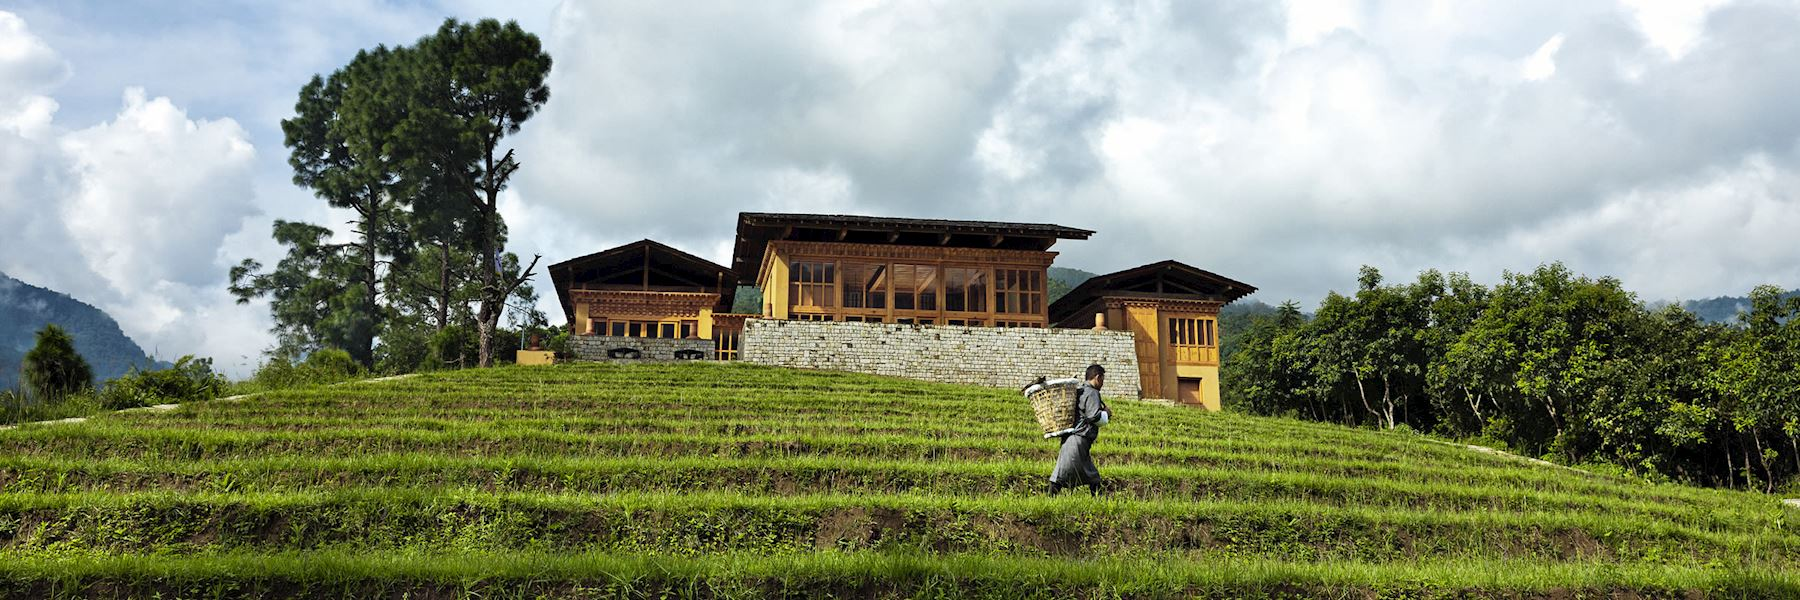 Accommodations in Bhutan